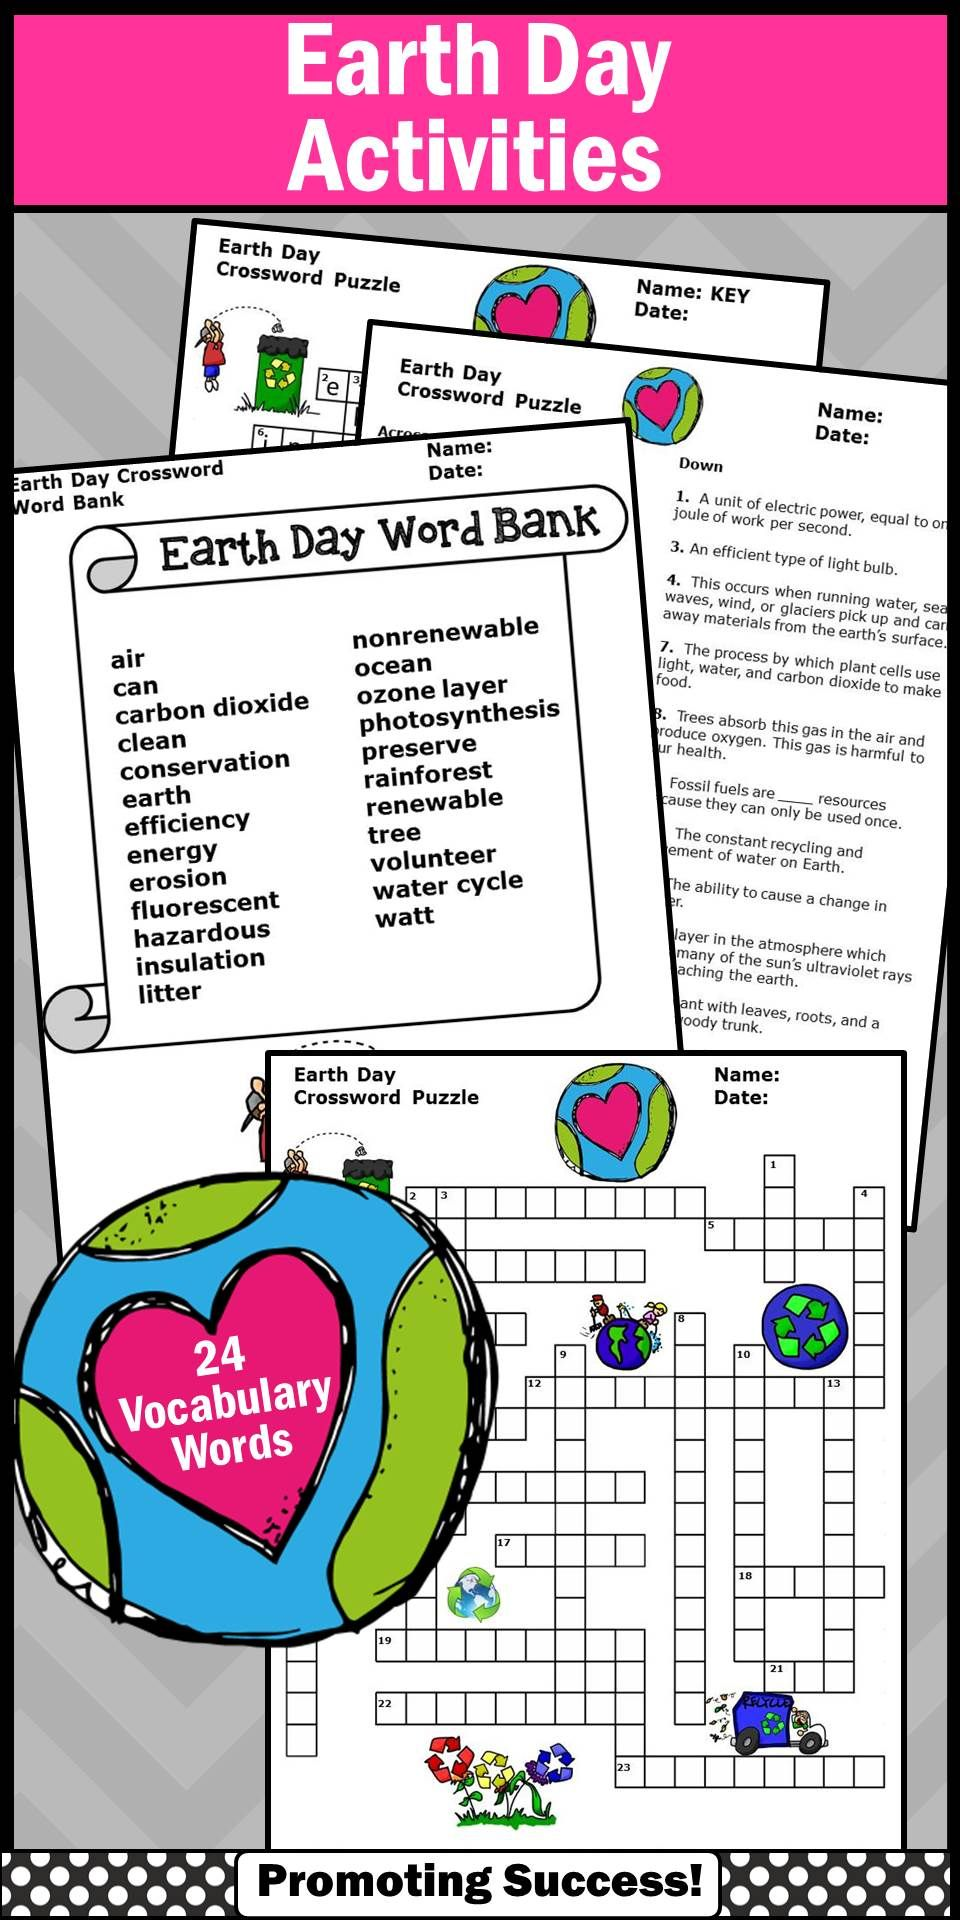 Earth Day Activities Supplement  Science Crossword Puzzle